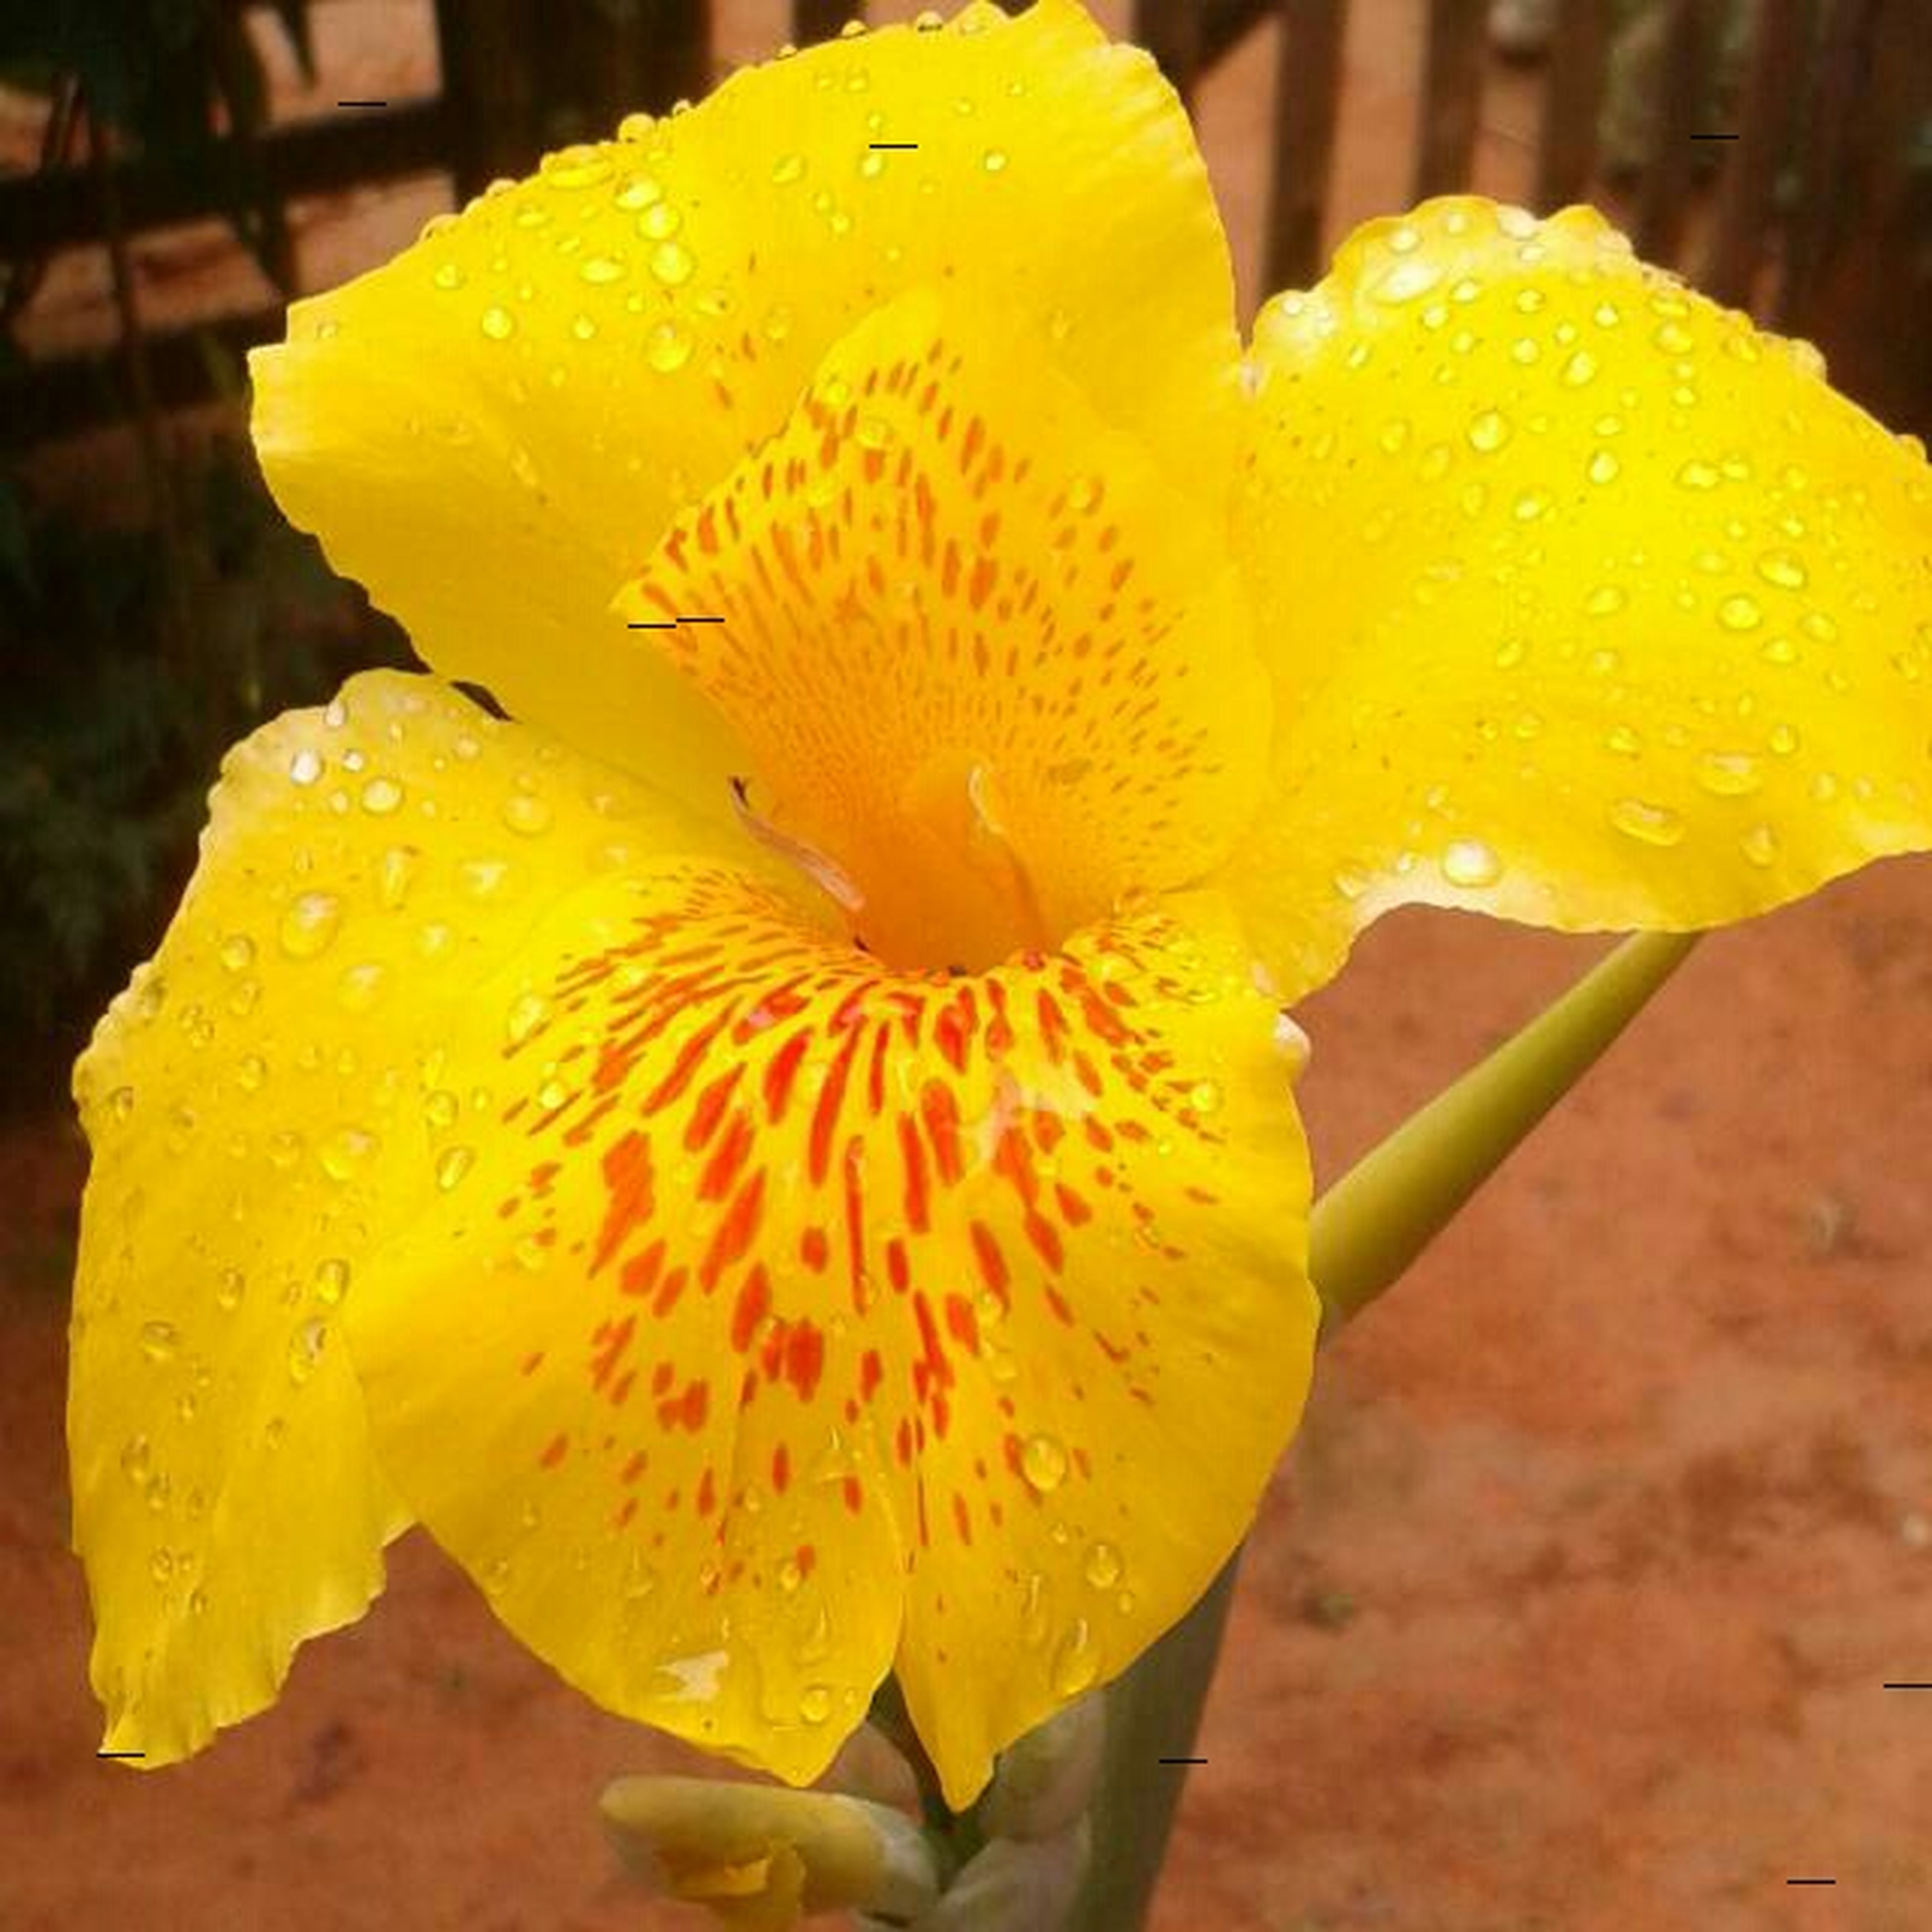 flower, petal, freshness, flower head, yellow, fragility, drop, close-up, wet, beauty in nature, water, growth, single flower, nature, blooming, dew, focus on foreground, in bloom, plant, season